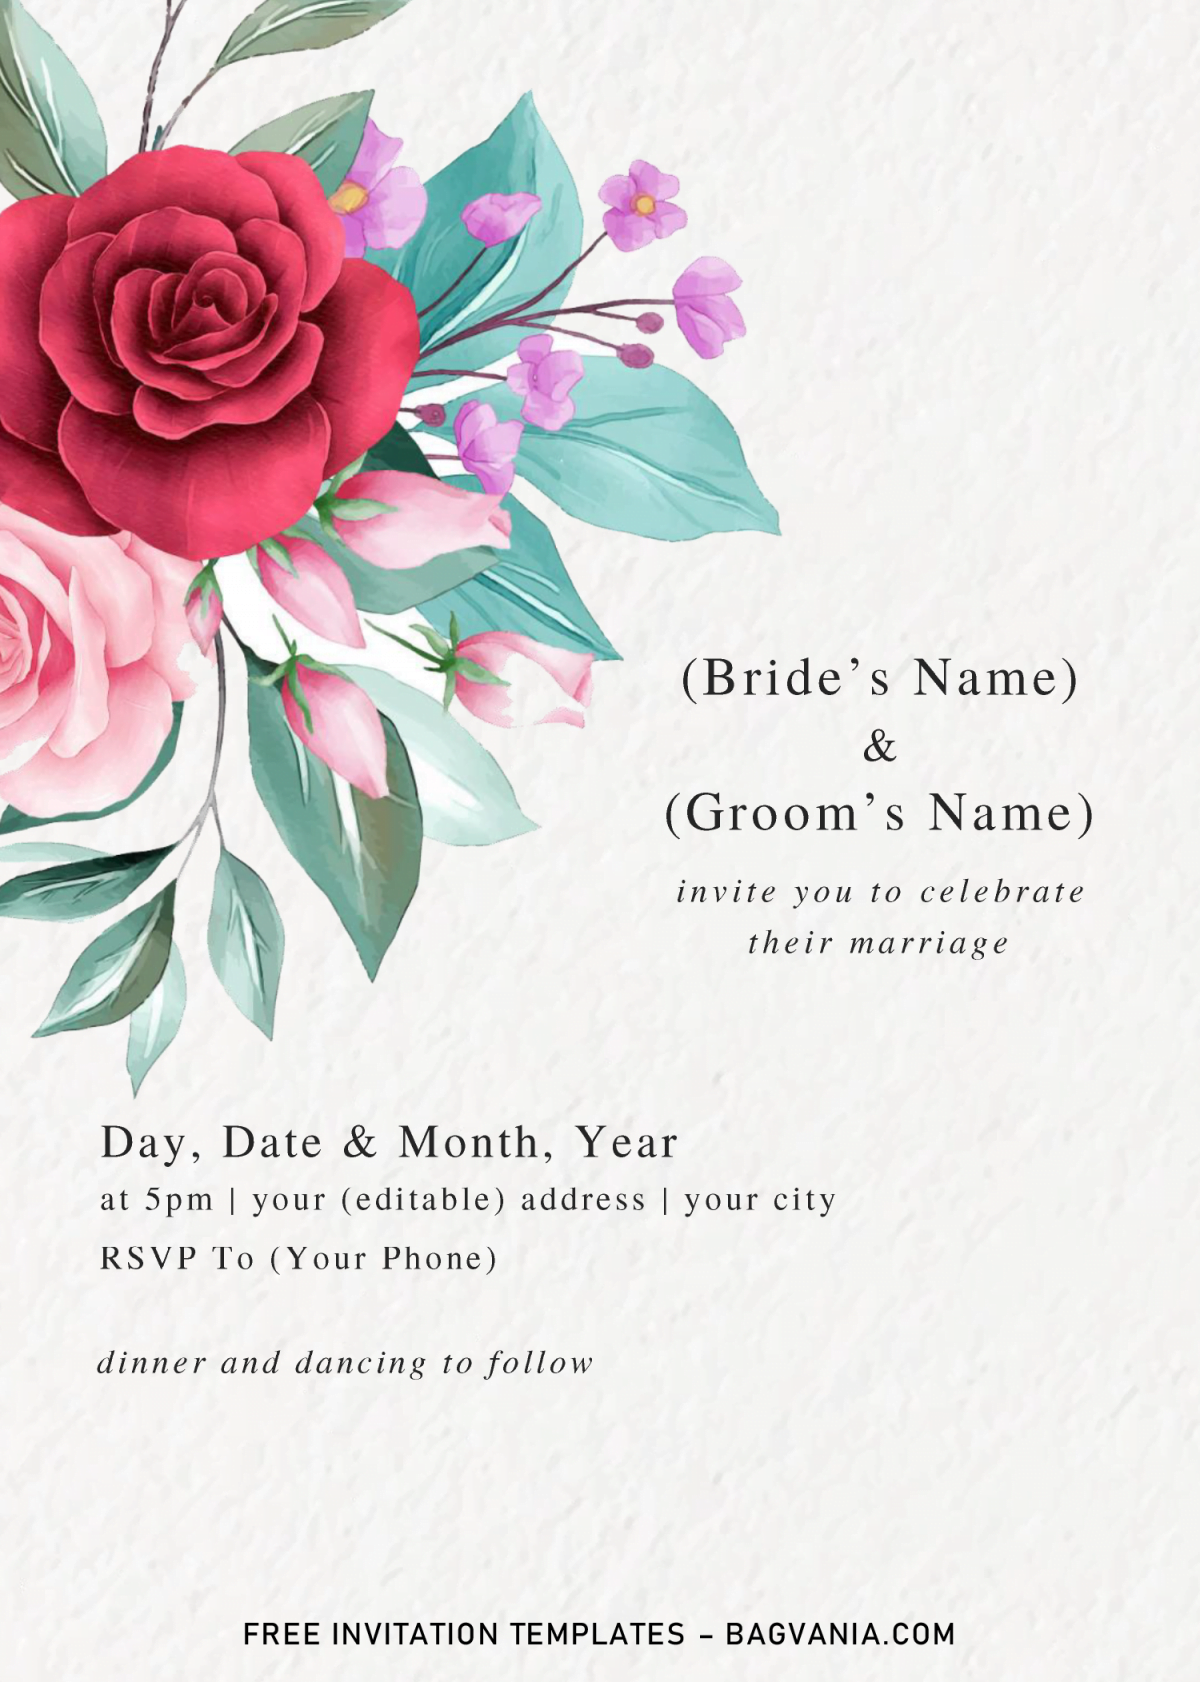 Floral And Greenery Invitation Templates - Editable With Microsoft Word and has red roses